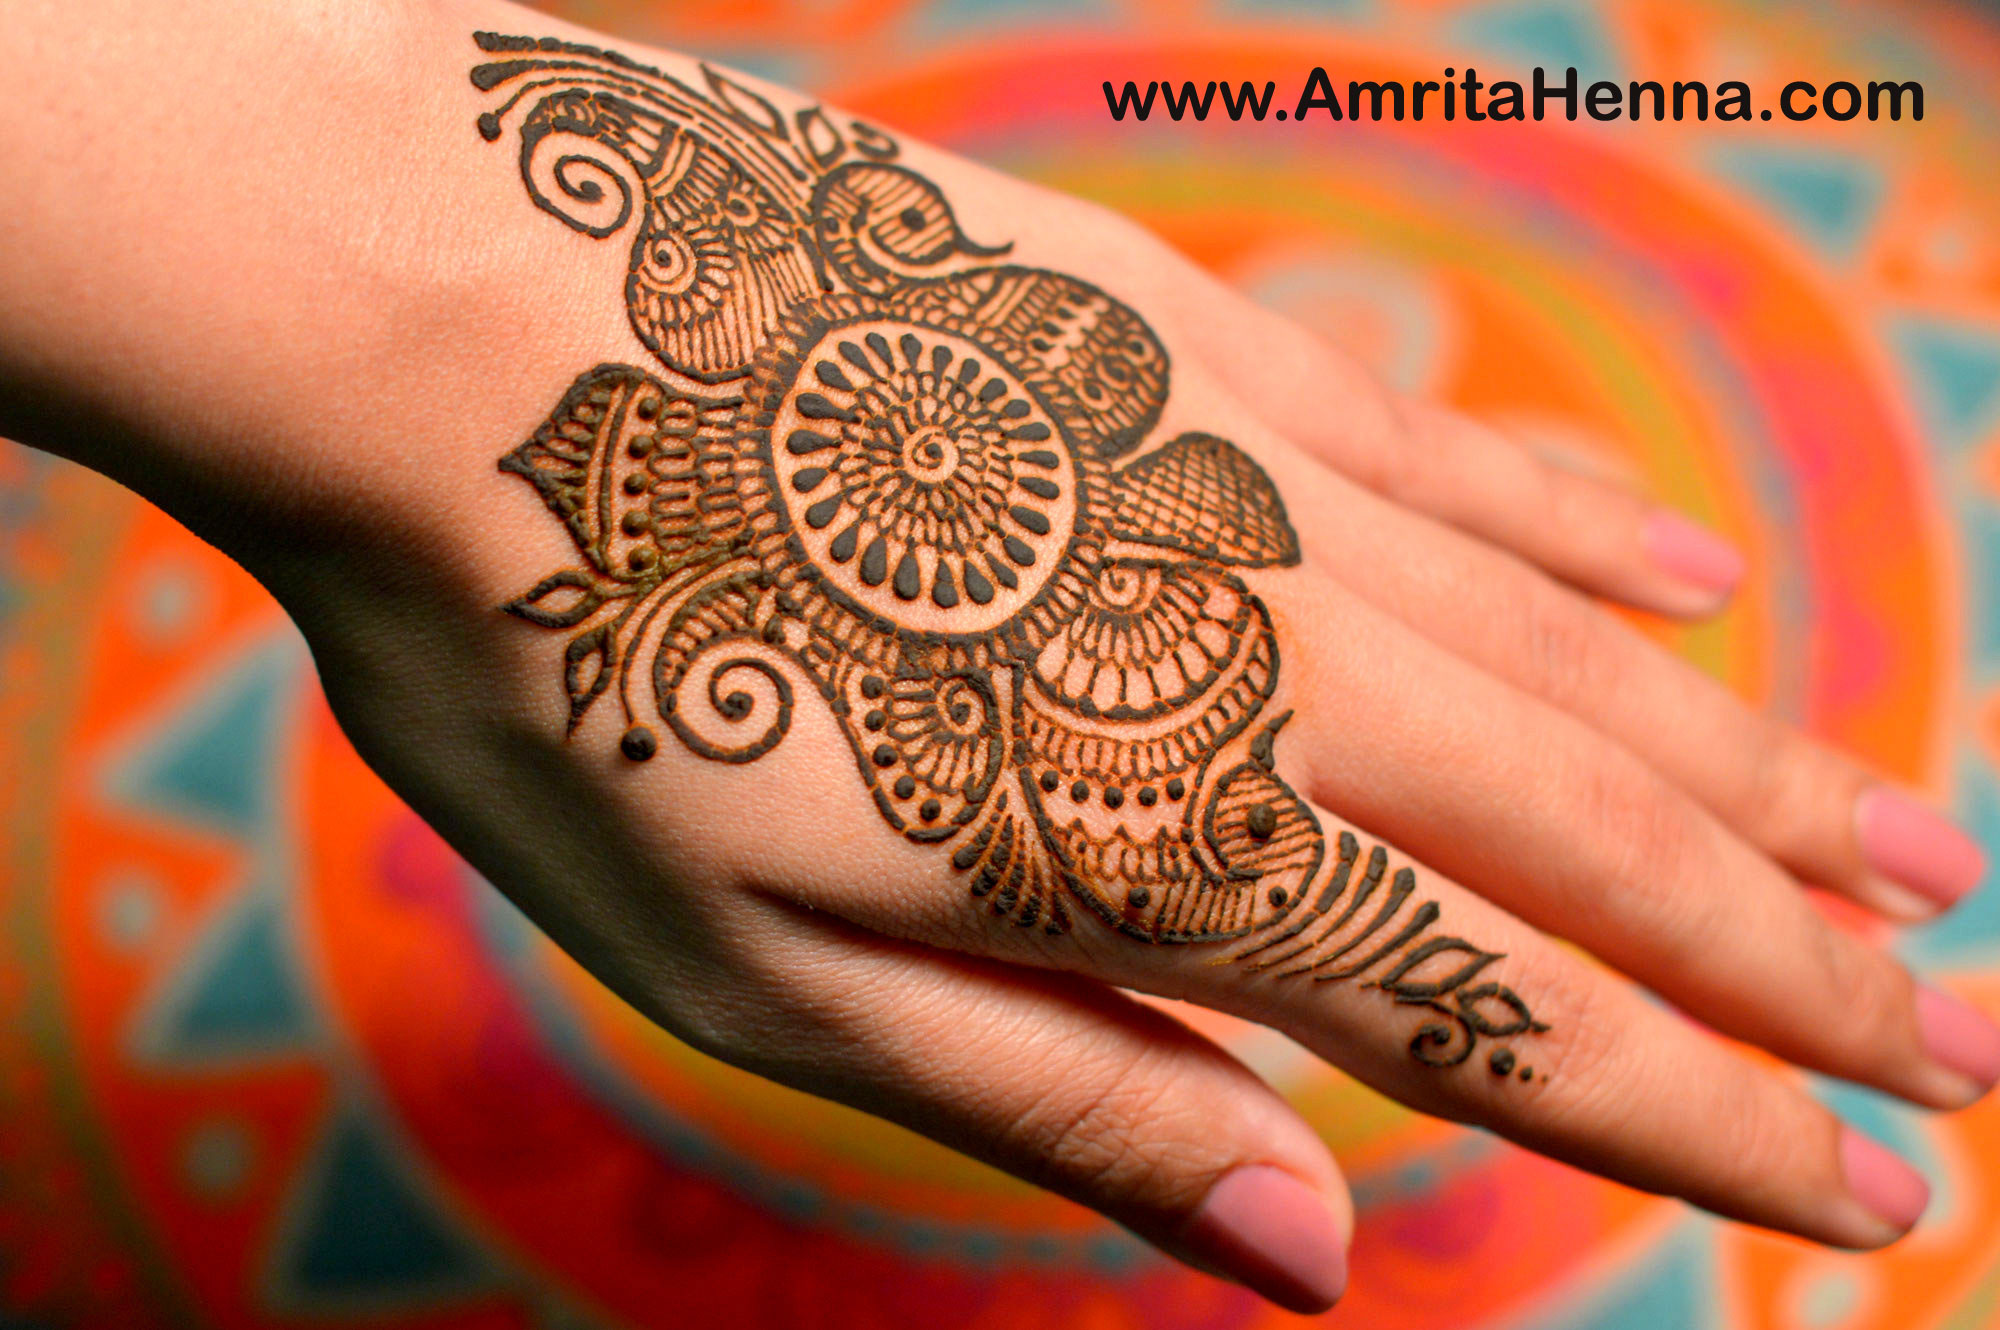 TOP 10 NEW AND UNIQUE TRENDY HENNA DESIGNS - 10 BEST STYLISH MEHNDI DESIGNS - TOP 10 MUST TRY MEHENDI DESIGNS FOR 2018 - 10 STUNNING MEHANDI DESIGNS FOR 2018 - TOP 10 HENNA DESIGNS FOR 2018 - 10 SUPER TRENDY HENNA MEHNDI DESIGNS FOR 2018 - 10 TRENDSETTING HENNA DESIGNS FOR 2018 - 10 SIMPLE YET TRENDY HENNA TATTOO IDEAS - TOP 10 GORGEOUS MEHENDI DESIGNS THAT YOU CAN'T MISS - STYLISH HENNA DESIGNS 2018 - NEW AND EASY TRENDY MEHNDI DESIGN IDEAS 2018 - UNIQUE MEHENDI DESIGNS LATEST 2018 - LATEST TRADITIONAL HENNA DESIGNS - TRENDY MEHANDI DESIGNS IDEAS - HENNA PARTY IDEAS - INDIAN HENNA MEHNDI DESIGNS - MEHENDI DESIGNS FOR FESTIVALS